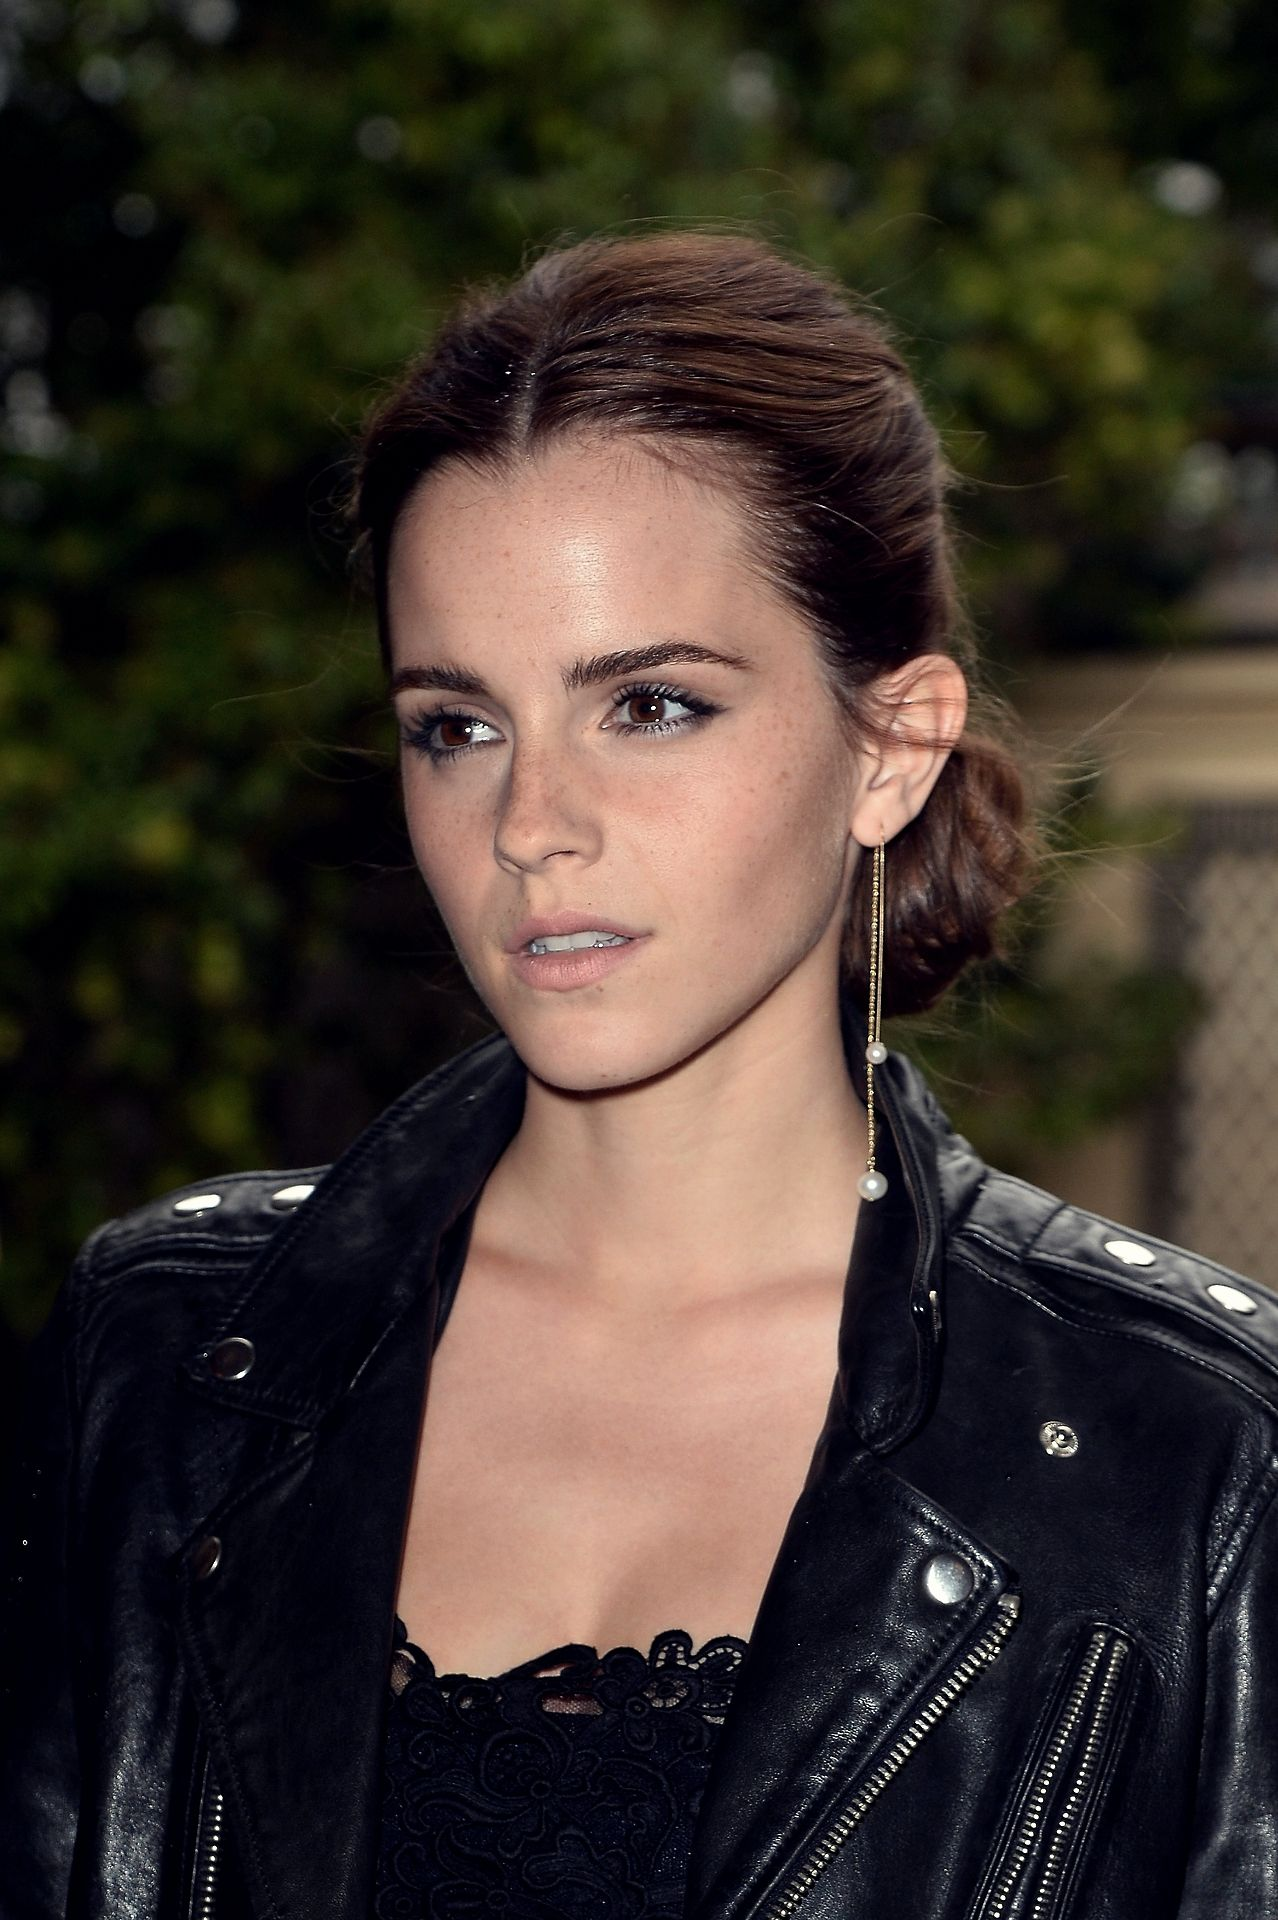 Emma Watson With Practically A Bare Face